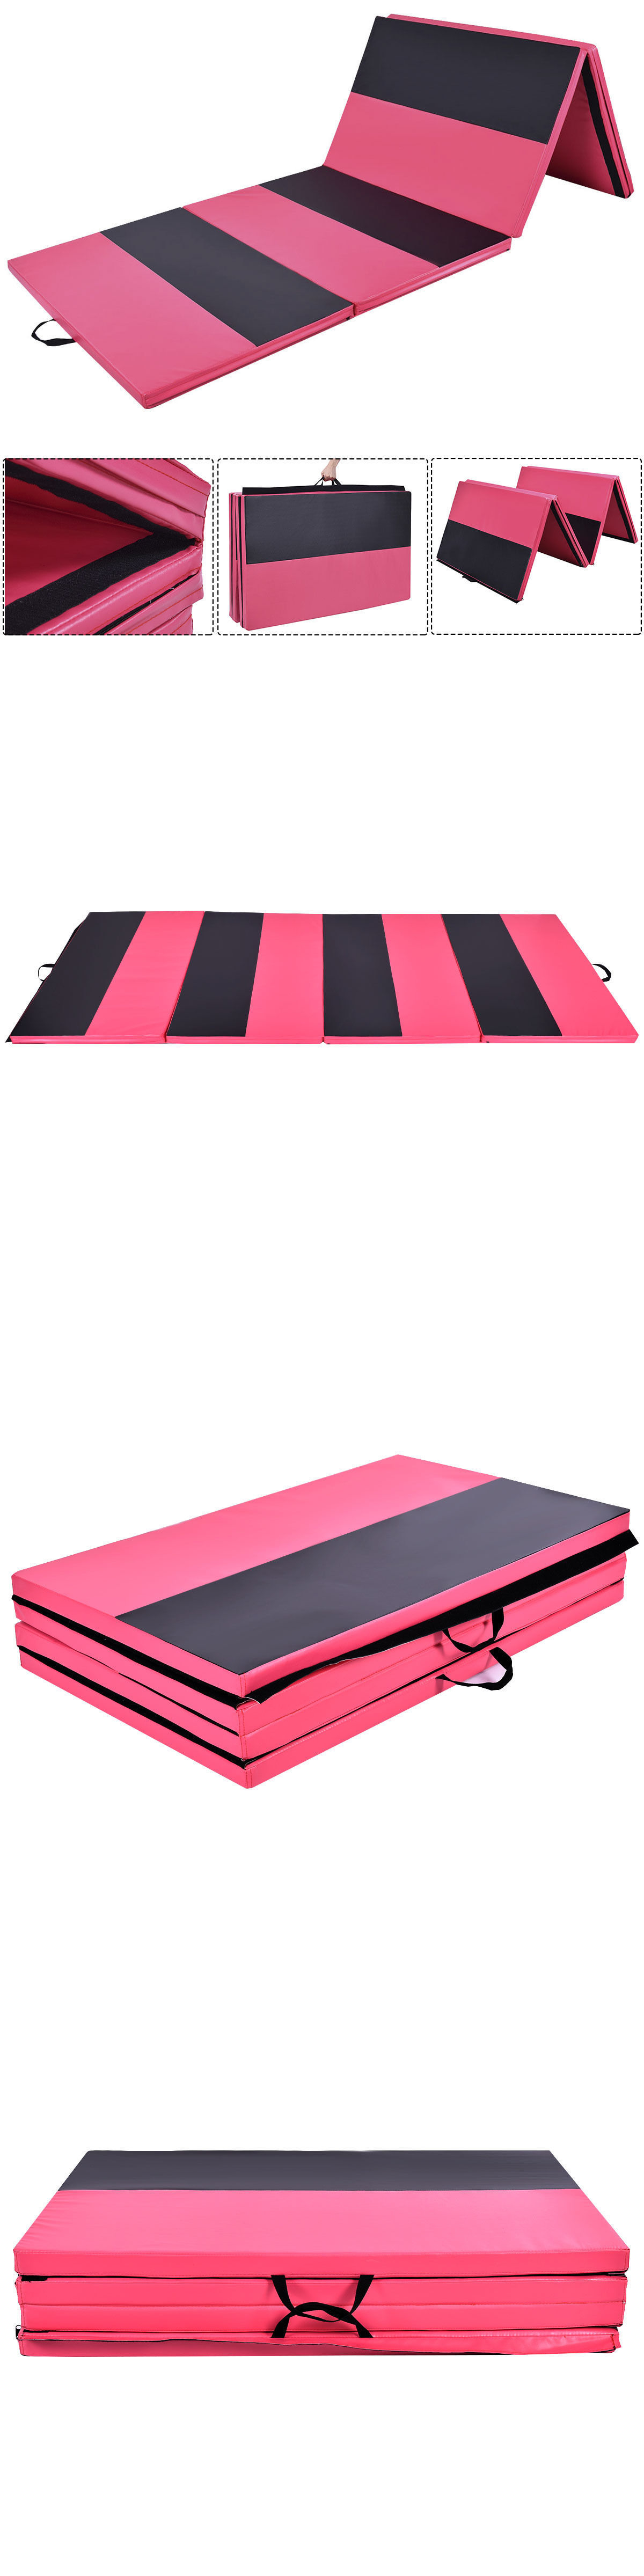 cheerleading incline training mats sports mat gymnastics products cheap purple options inclinemat cheer inc explore resilite aids